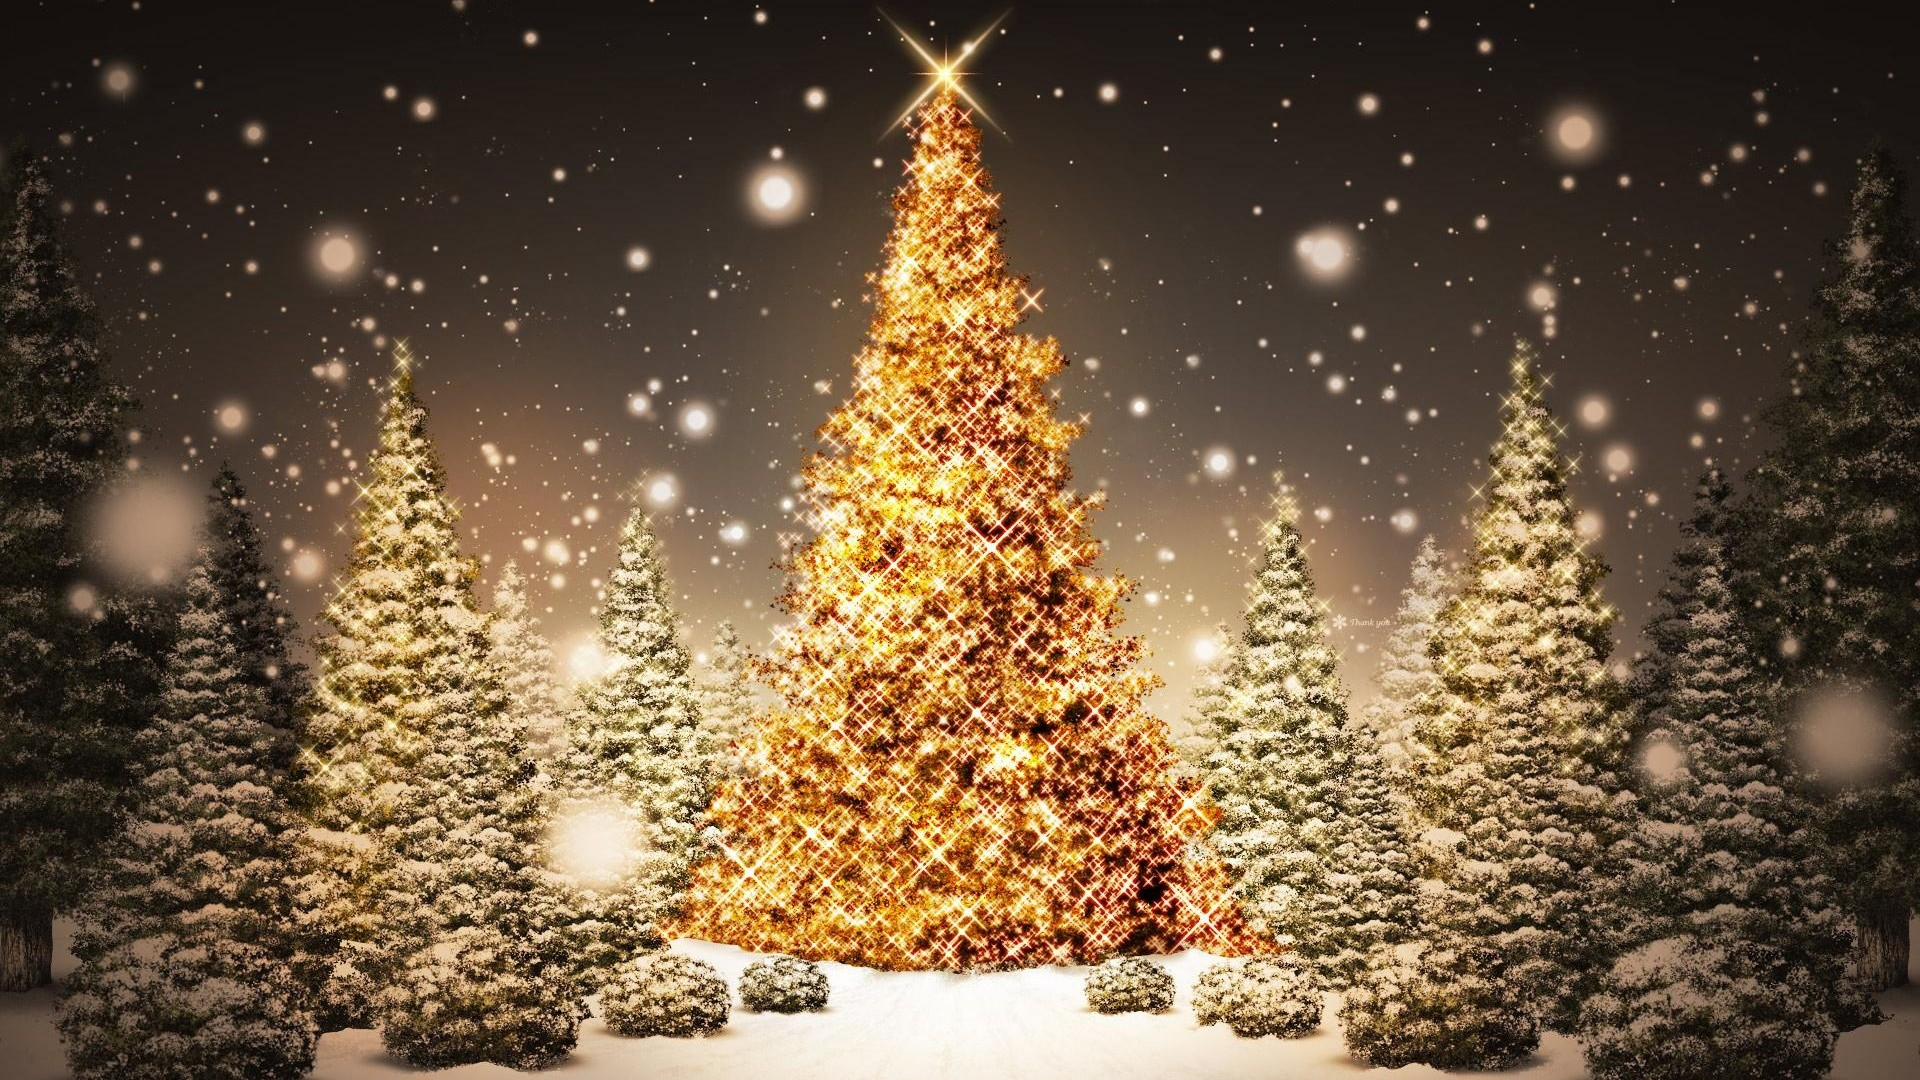 Preview wallpaper new year, christmas, trees, wood, card, snow, night